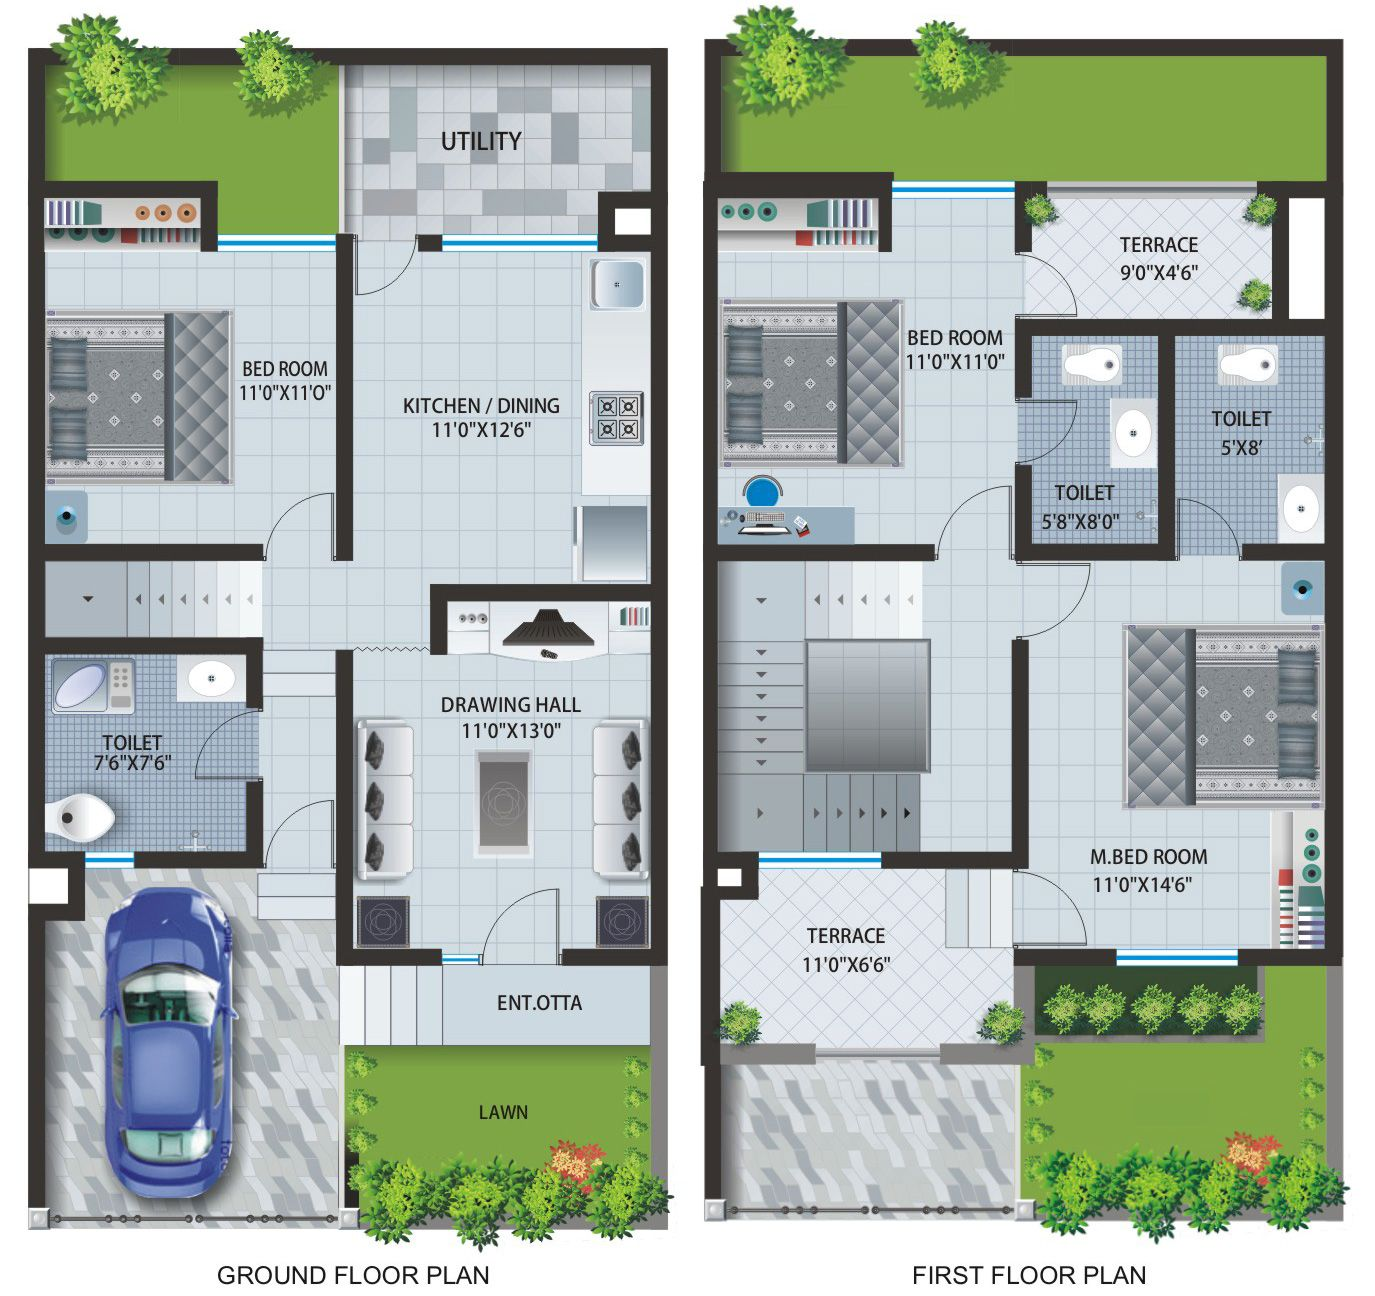 Floor plans of apartments row houses at caroline baner for Home map design free layout plan in india